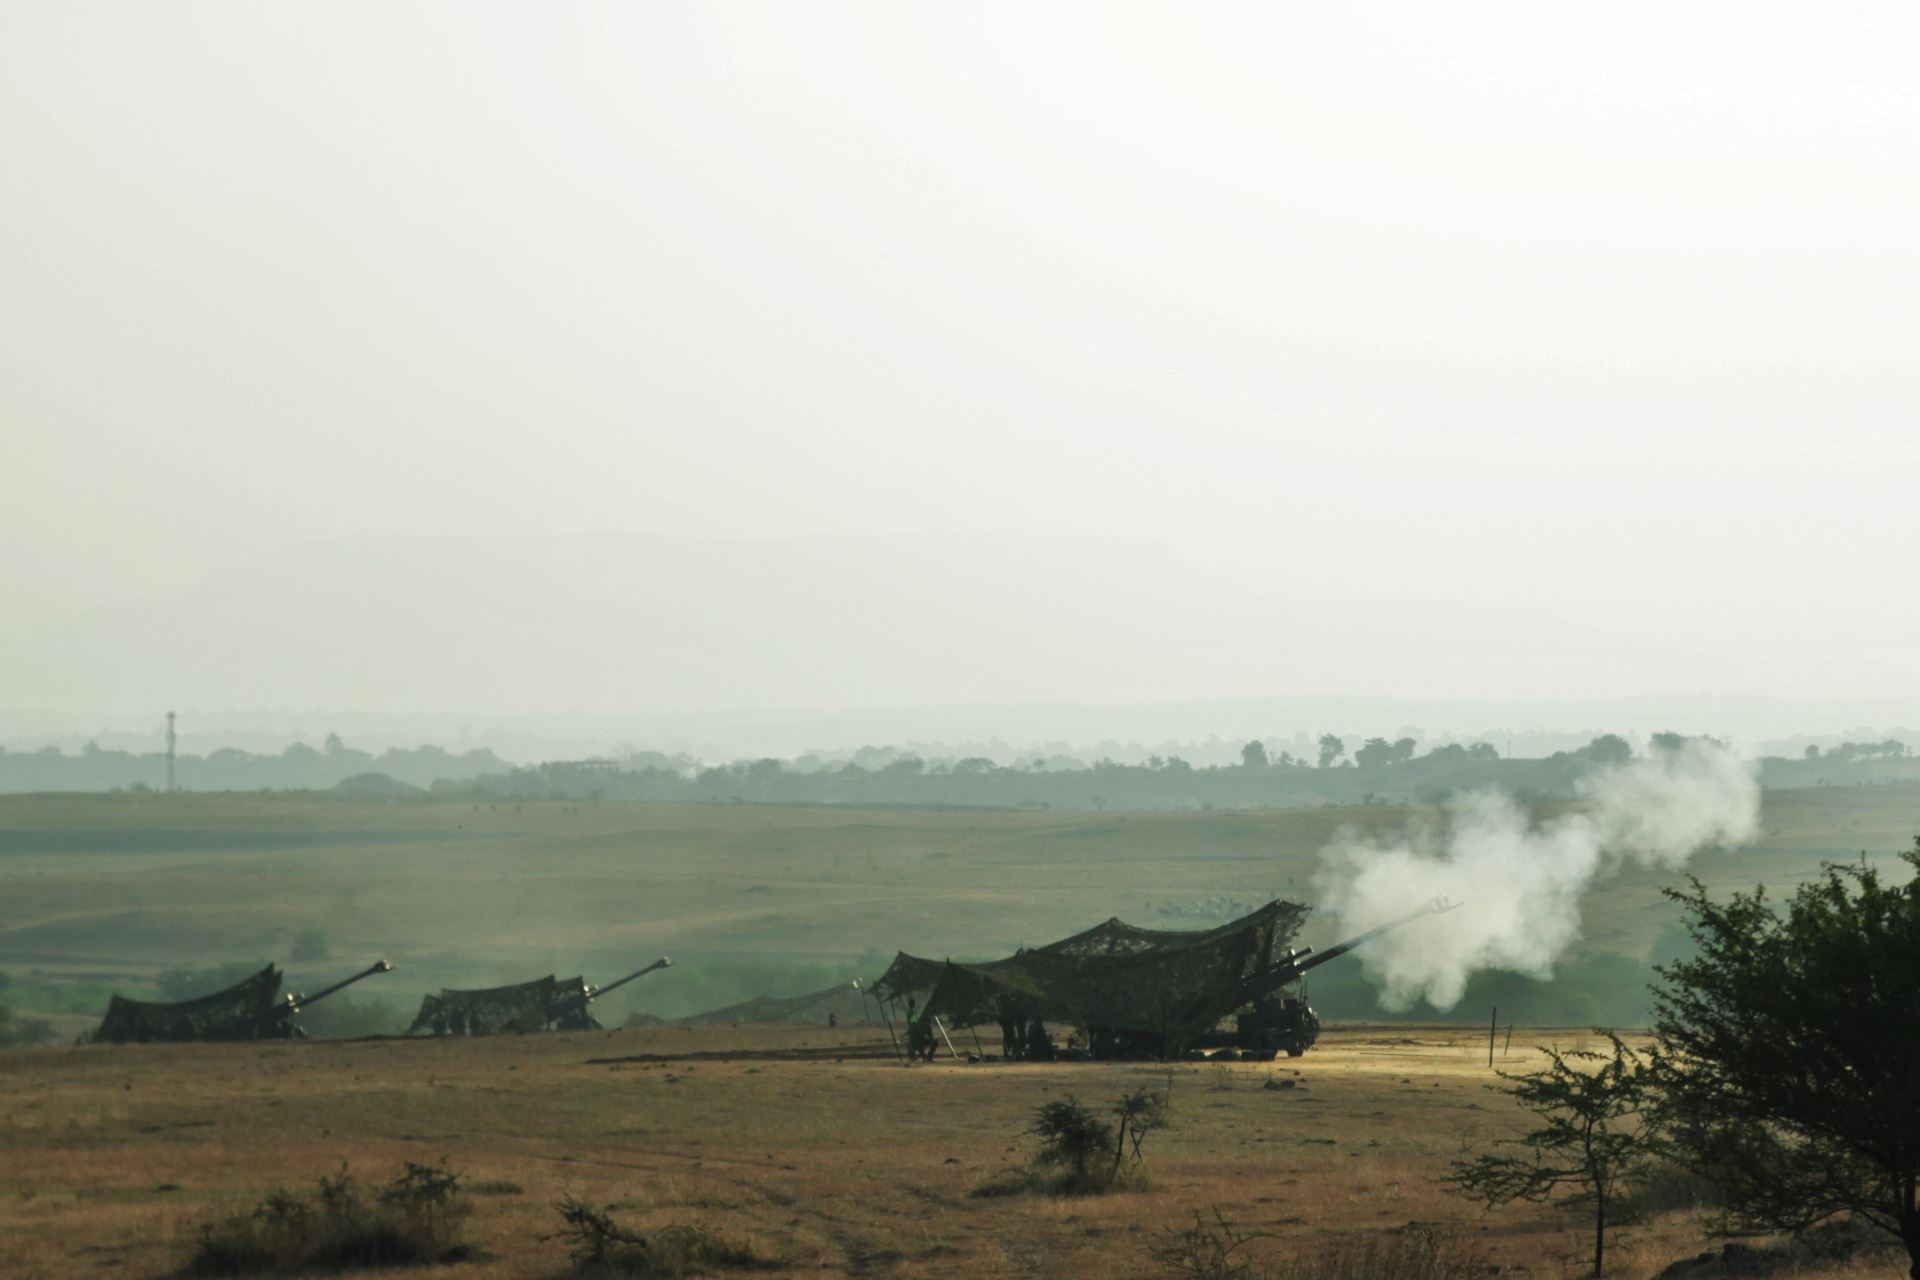 Singapore Light Weight Howitzers of Singapore Armed Forces firing off in a joint live-firing with the Indian Army at Exercise Agni Warrior 2018. (Photo courtesy: Ministry of Defence, Singapore